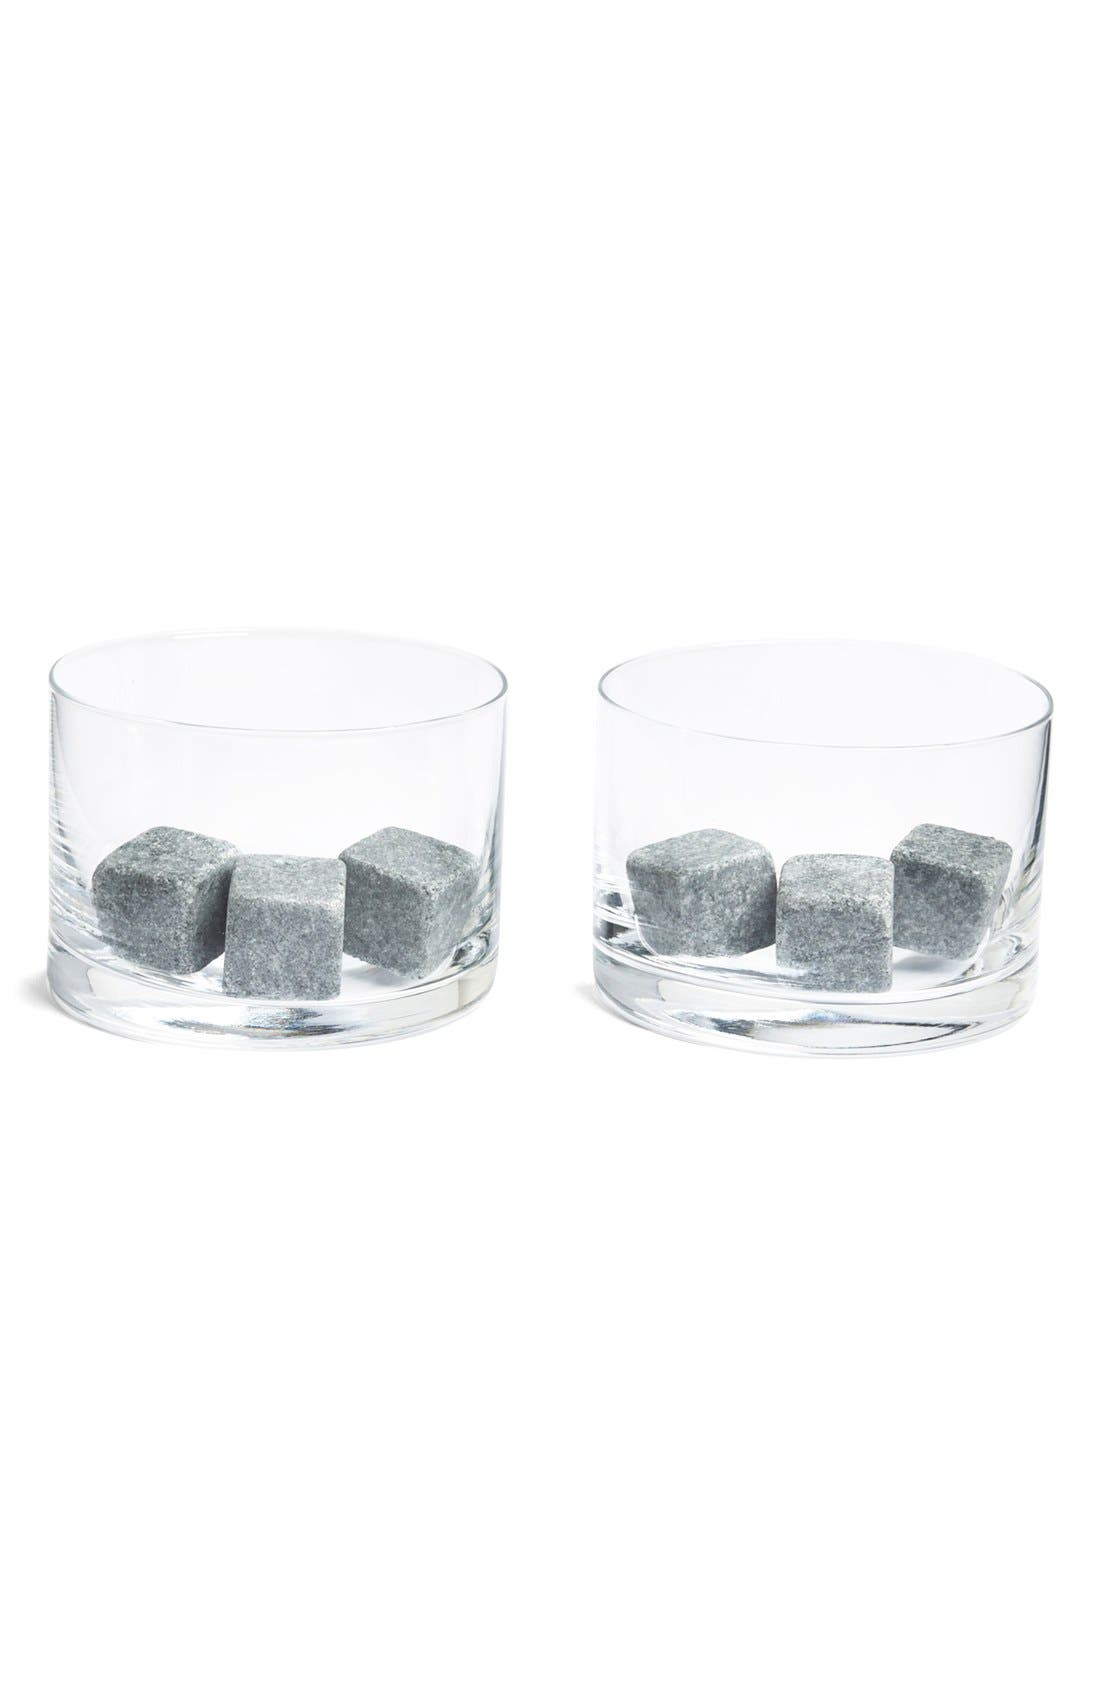 Main Image - Teroforma 'Whisky for Two' Tumbler and Beverage Cube Set